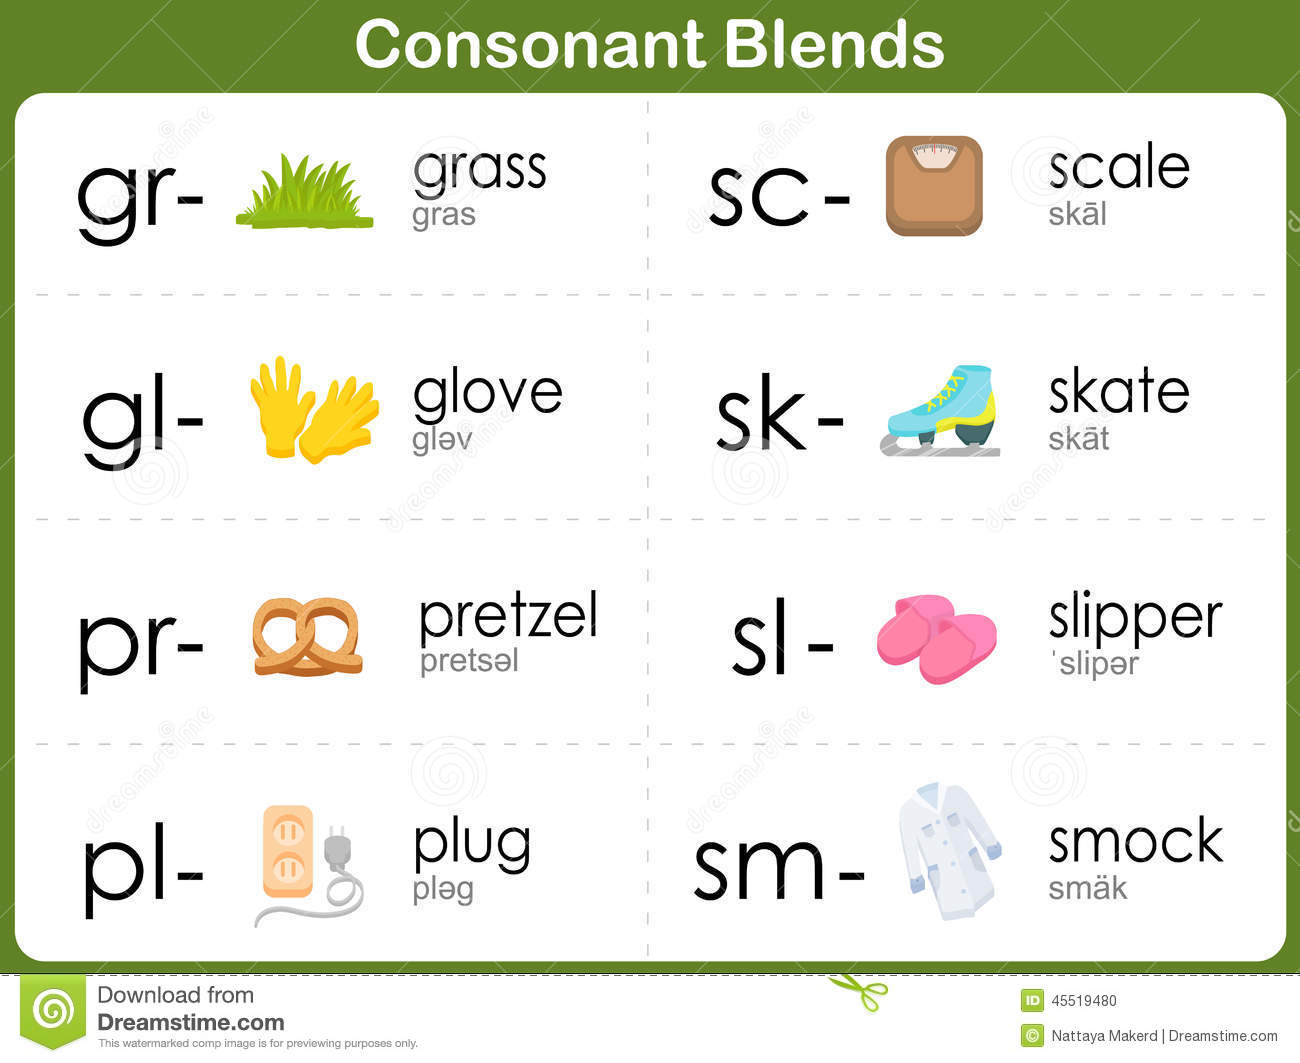 Worksheets Consonant Blend Worksheets consonant blends worksheet for kids stock vector image 45519480 kids